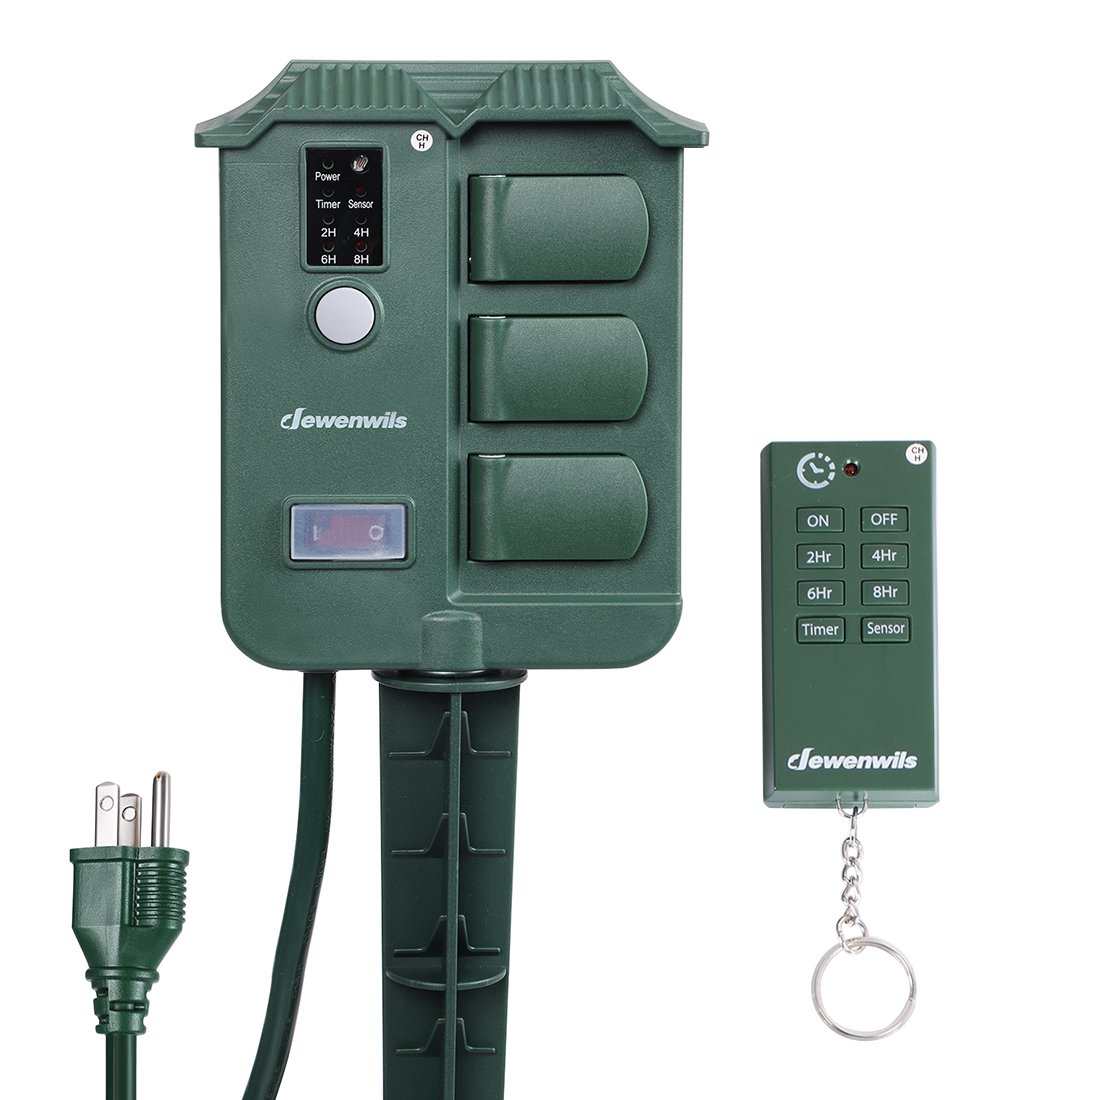 DEWENWILS Outdoor Power Strip Stake Timer with Remote, Waterproof Cover with 6 Grounded Outlets Electric Pool Timer, 6 ft Extension Cord, 100 ft Remote Control, 13A UL Listed by DEWENWILS